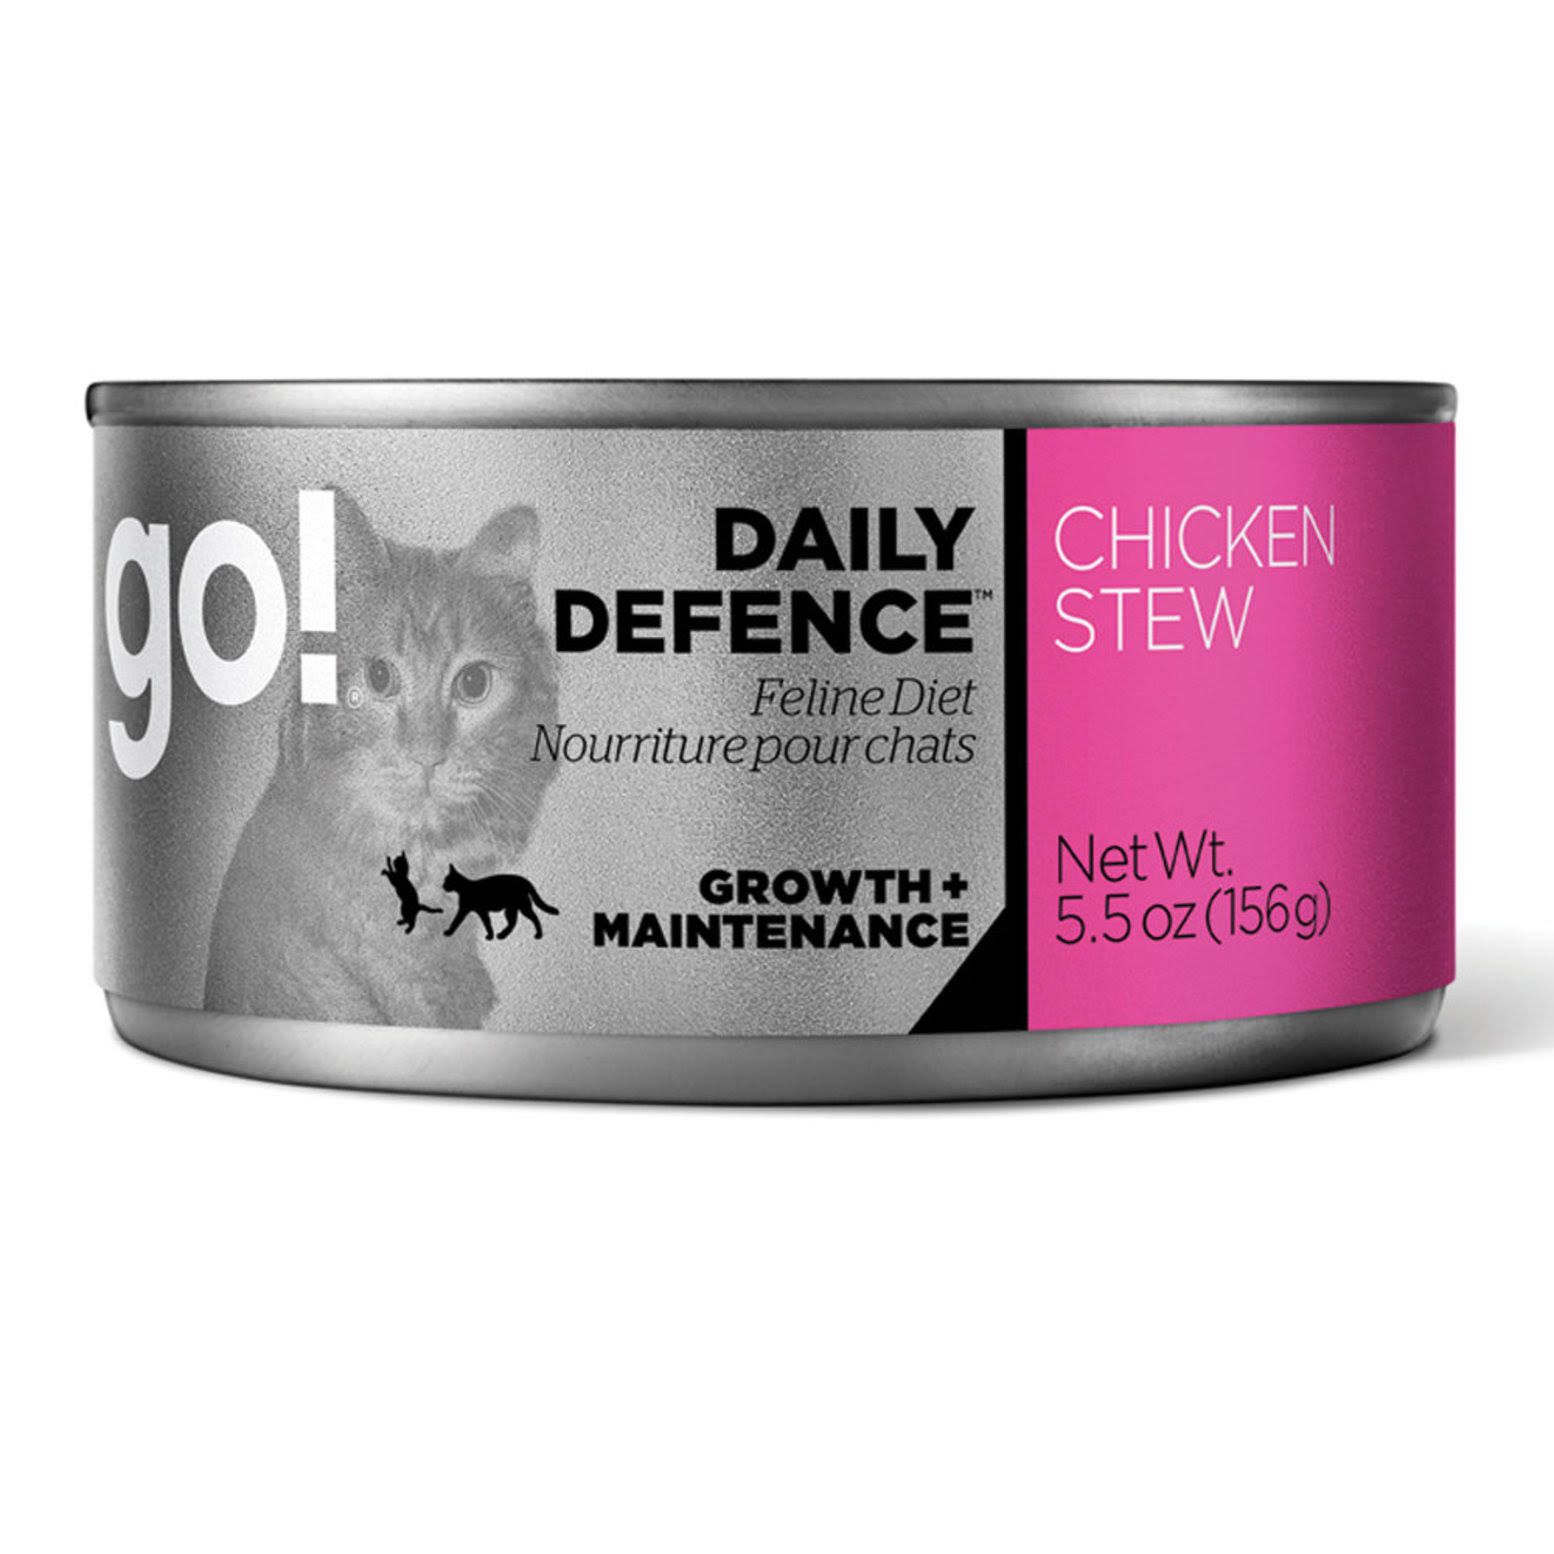 Go! Daily Defence Cat Food - Chicken Stew